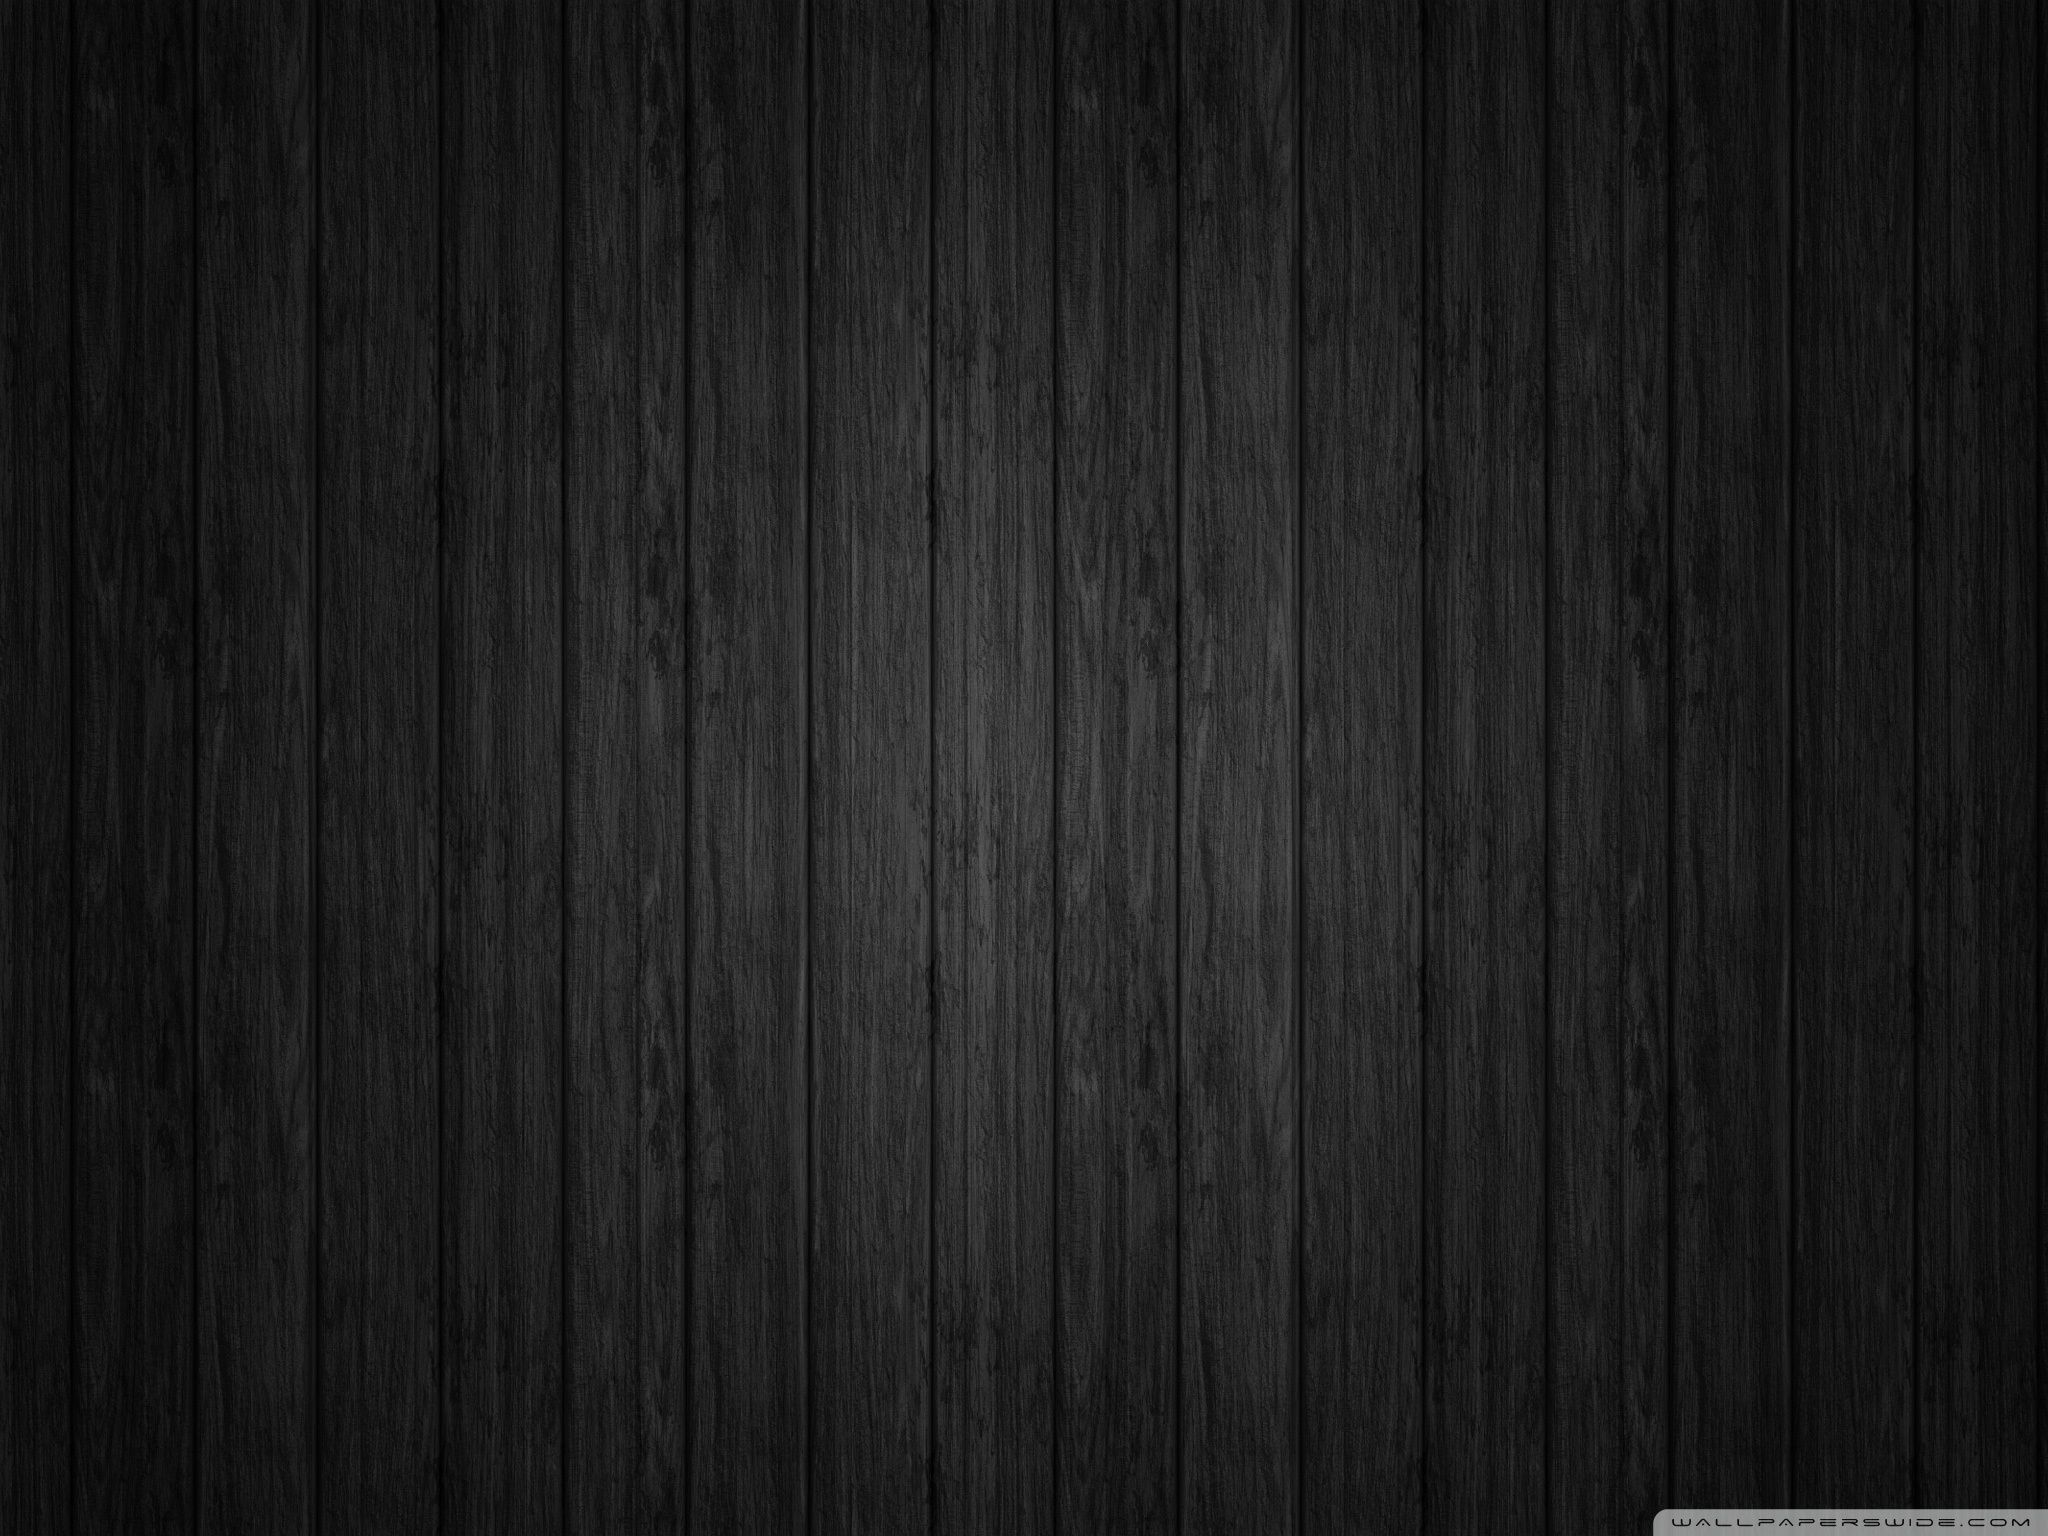 Woods 4k Background - Black Wood Wallpapers Wallpaper Cueva